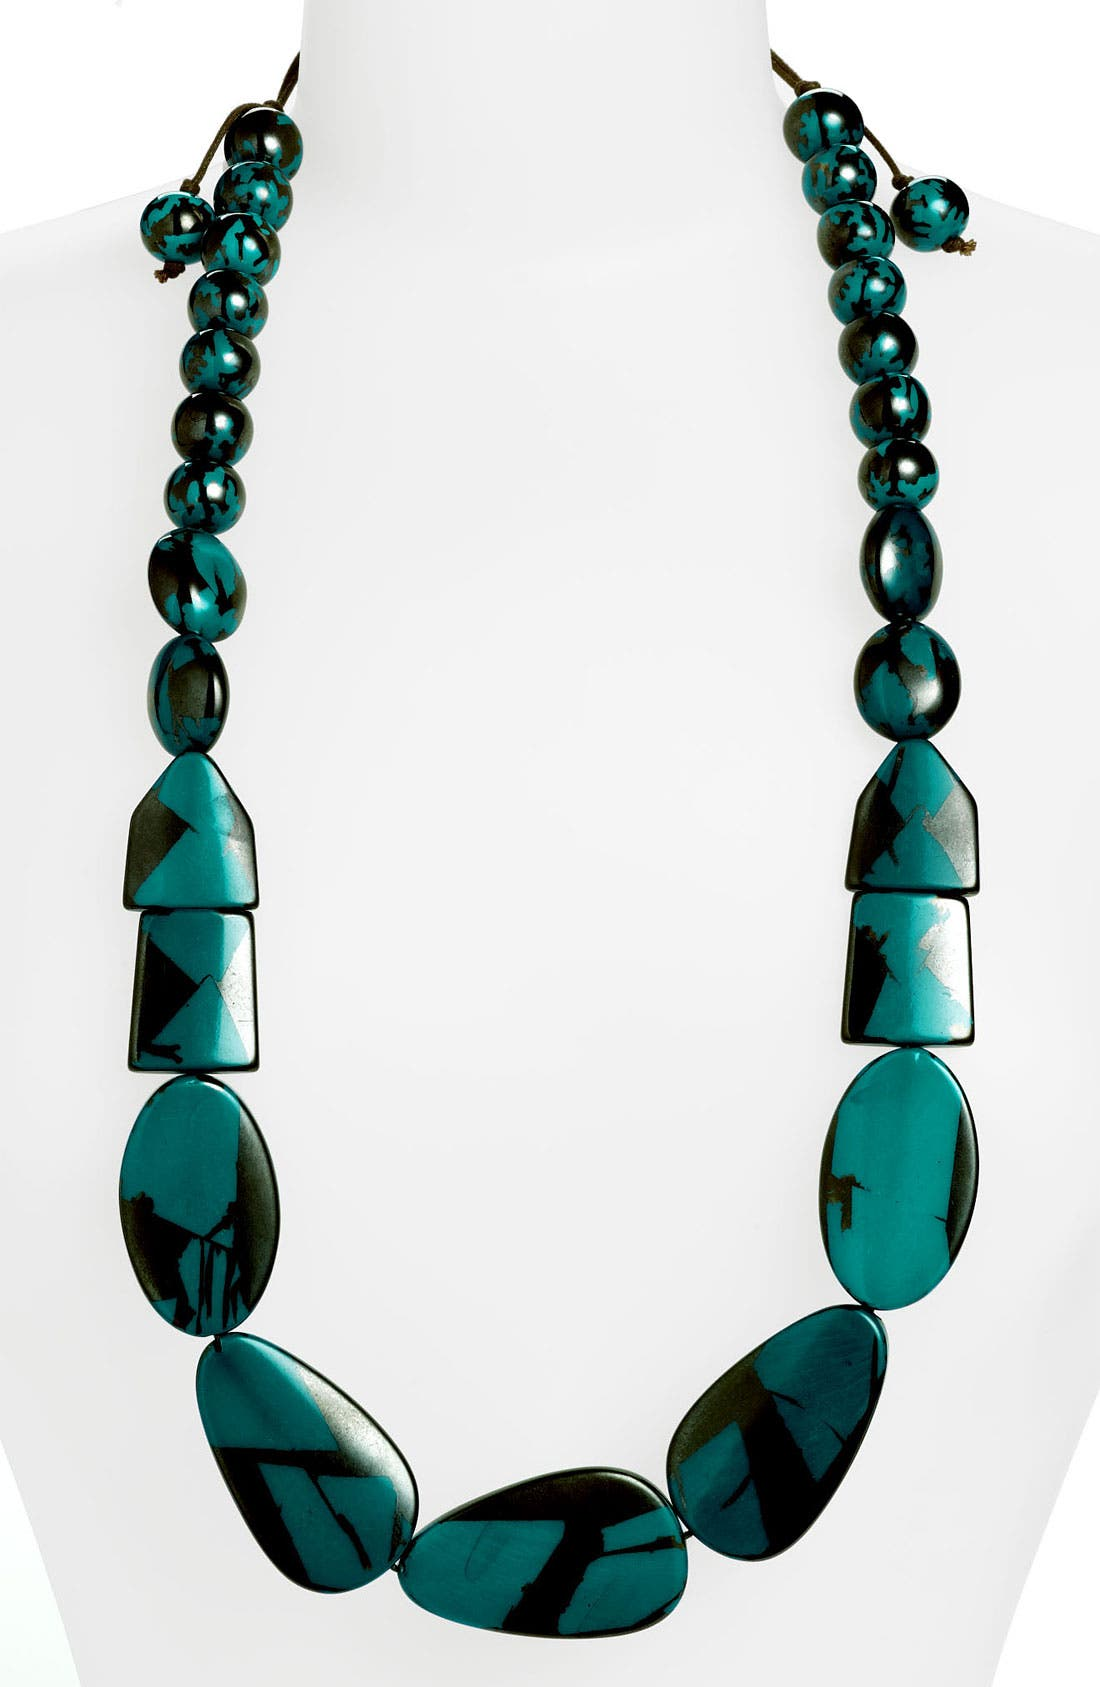 Alternate Image 1 Selected - Spring Street Design Group 'Tort' Resin Necklace